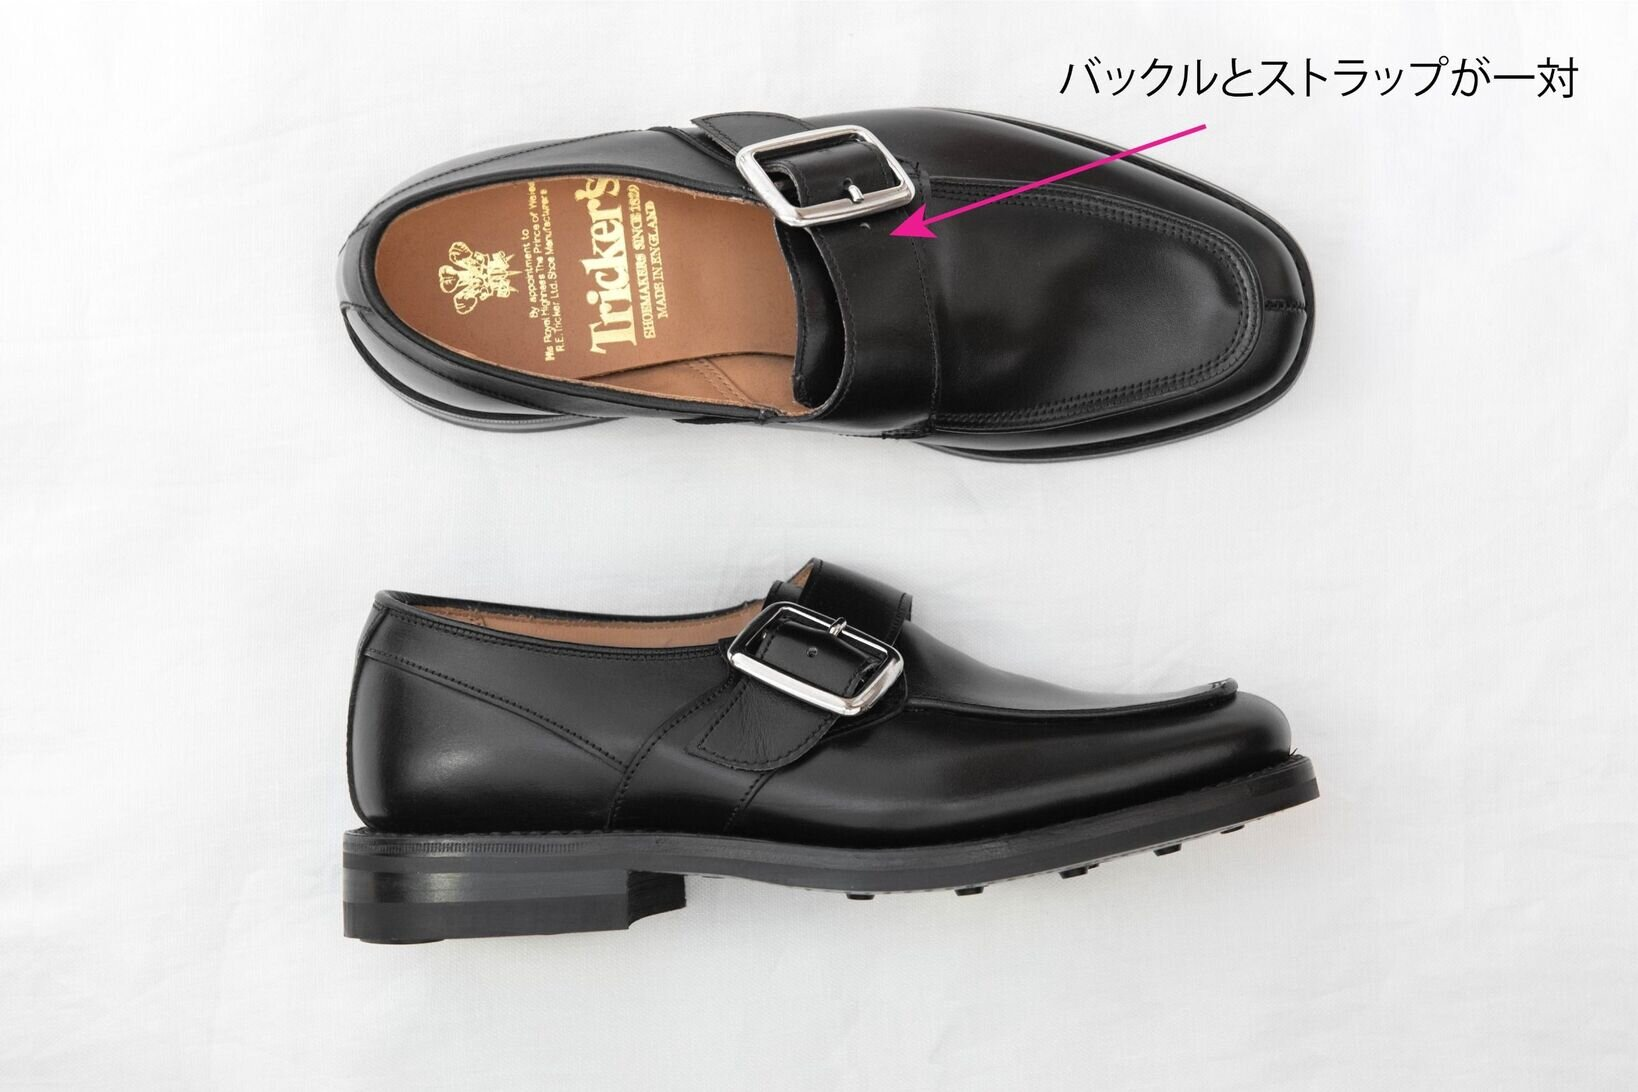 """「<a href=http://www.trickers-store.jp/shopdetail/000000000155/women/page2/recommend/ target='_blank'>L4869</a>」¥75,000+税/トリッカーズ青山店 ▶︎靴の詳細は<a href=""""https://muuseo.com/square/articles/1322"""" target=""""_blank"""">連載第2回</a>をチェック!"""